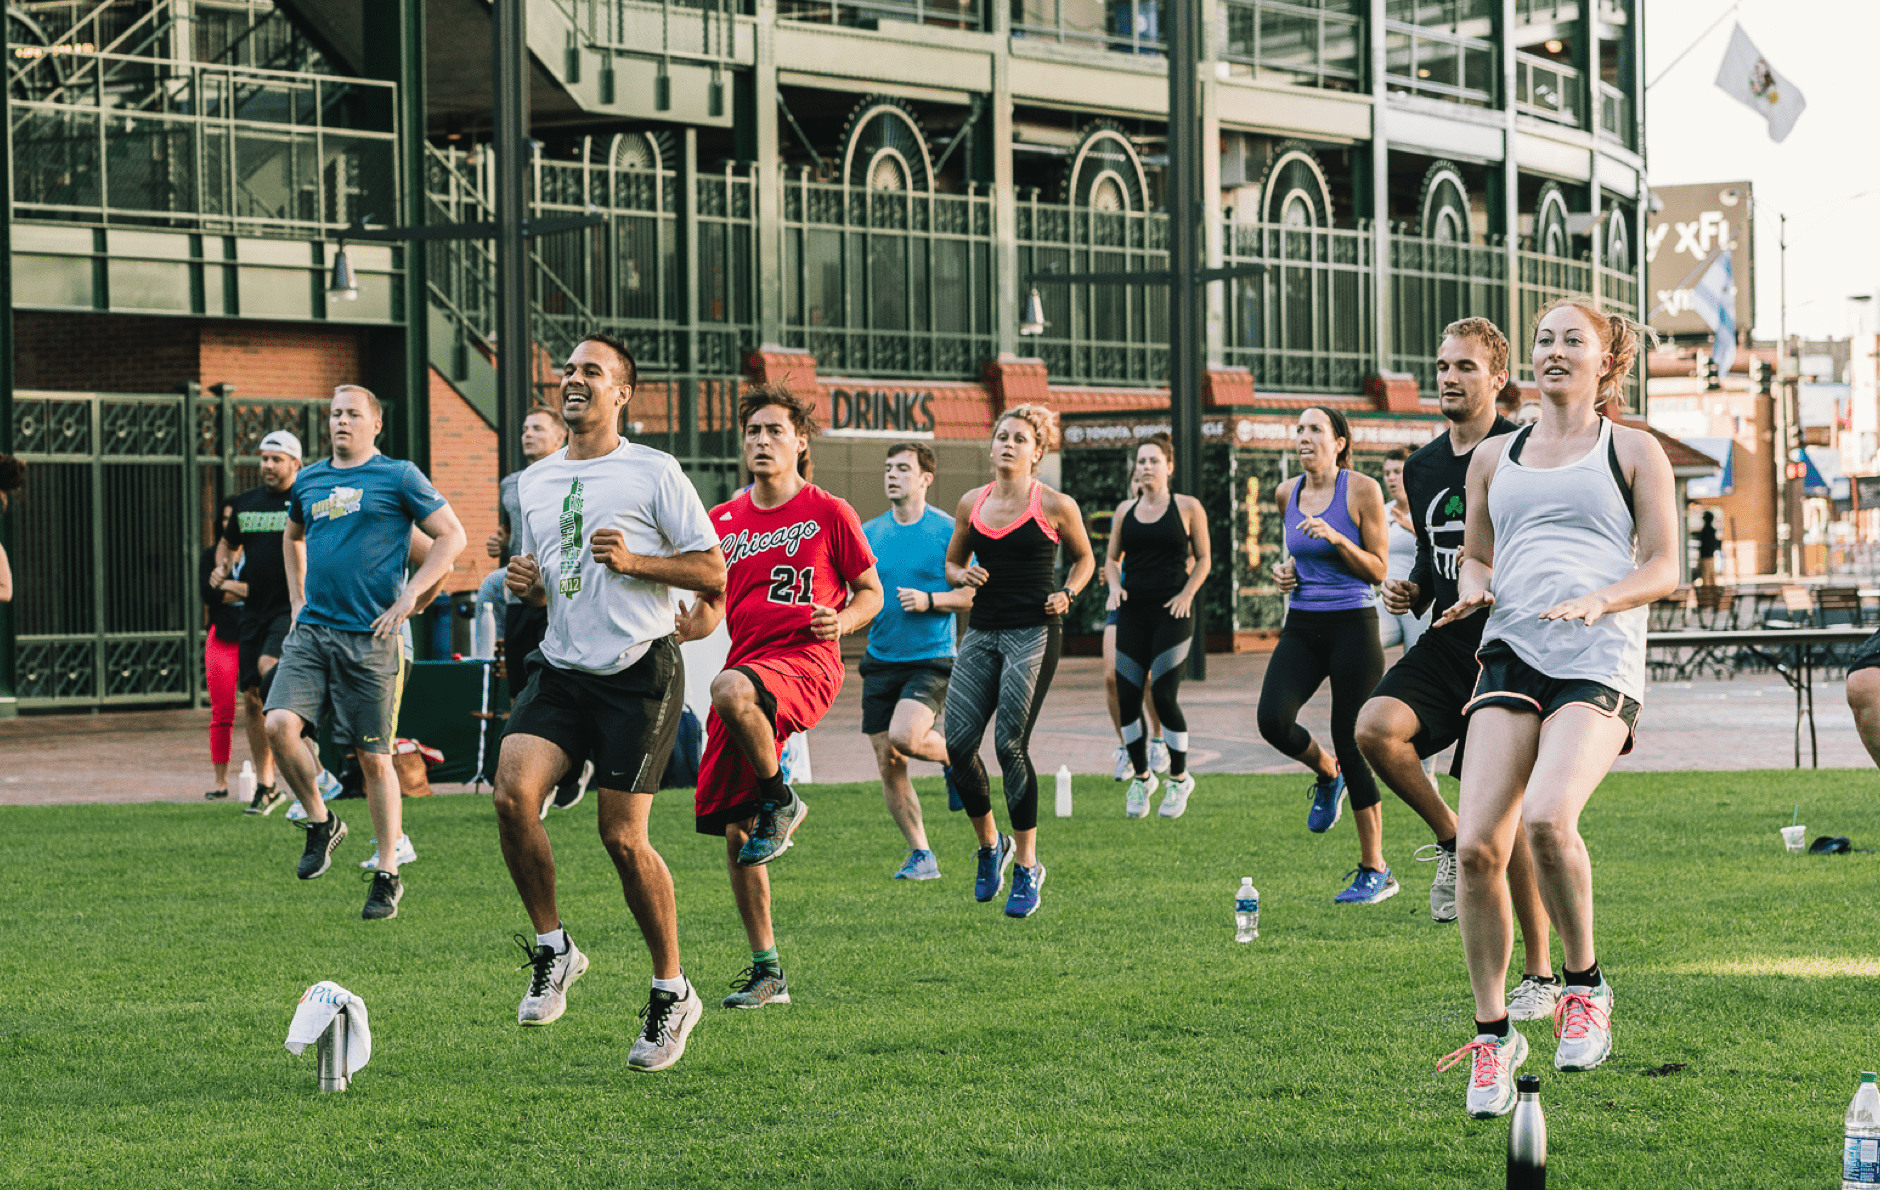 Fitness Series - Free fitness classes including Yoga, high intensity interval training and run club led by instructors from Chicago Athletic Clubs.